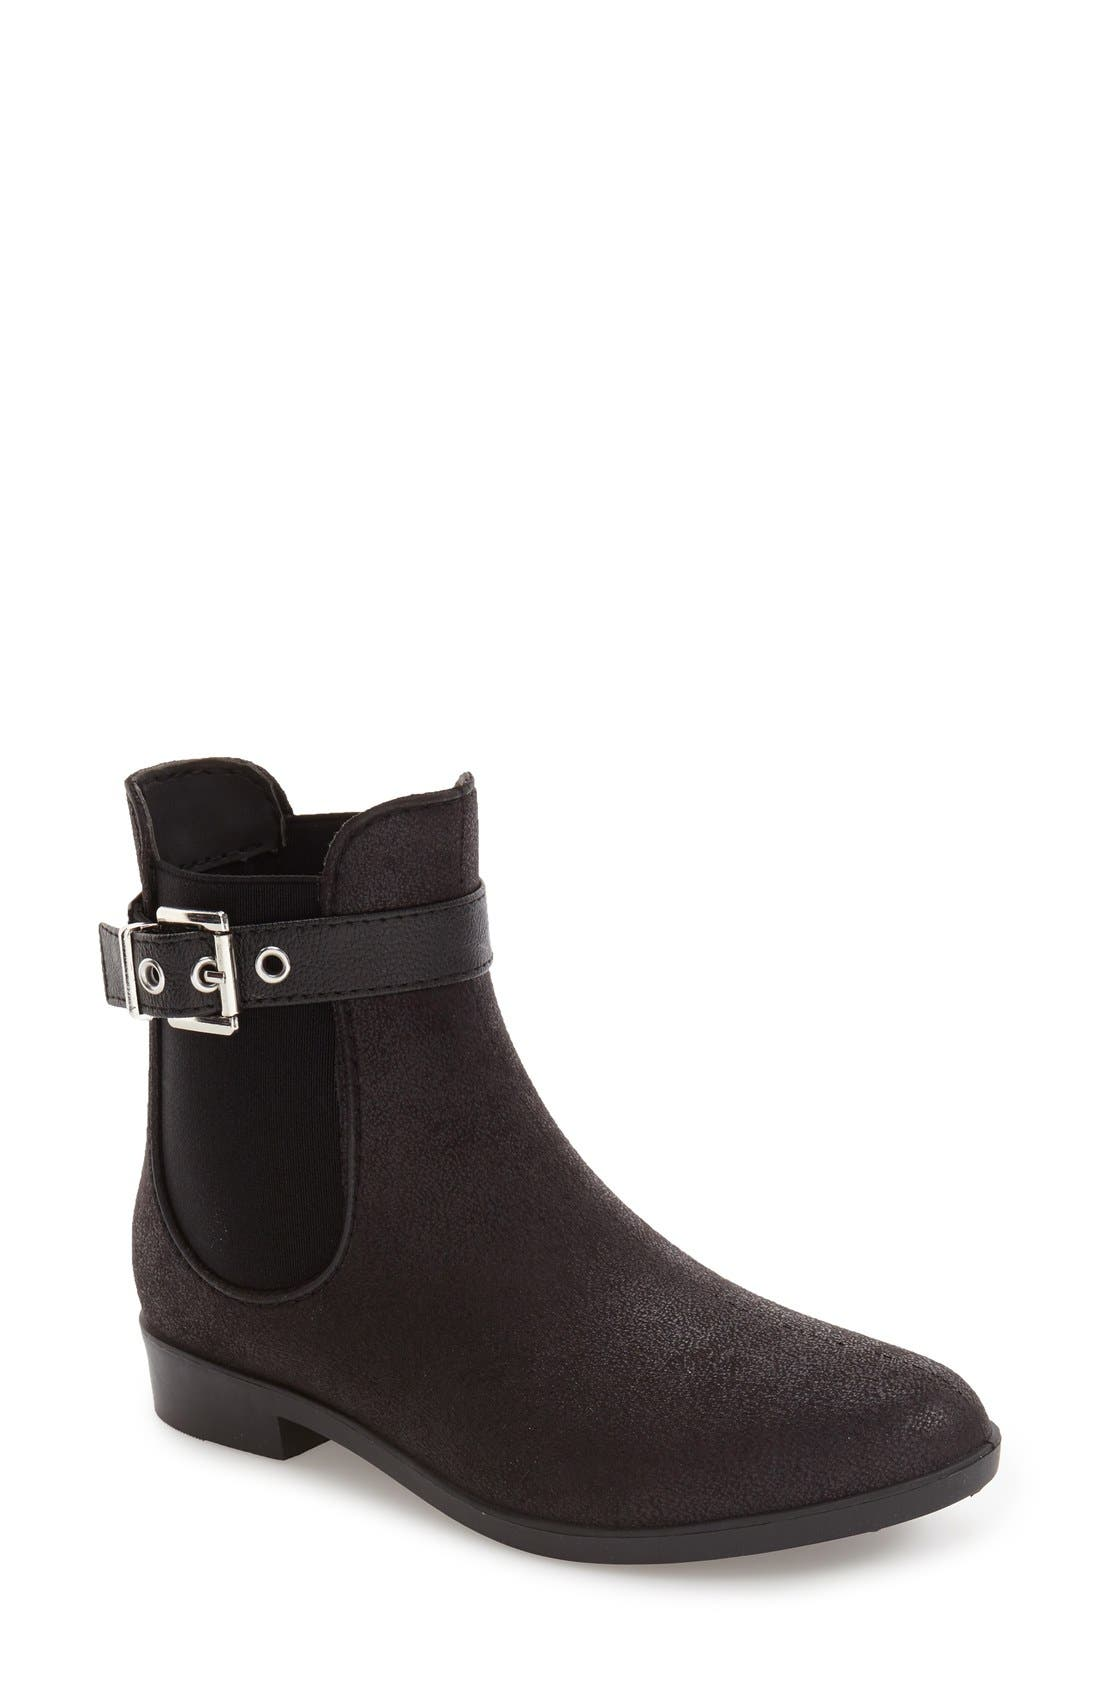 'Glasgow' Water Resistant Chelsea Boot,                         Main,                         color, Black